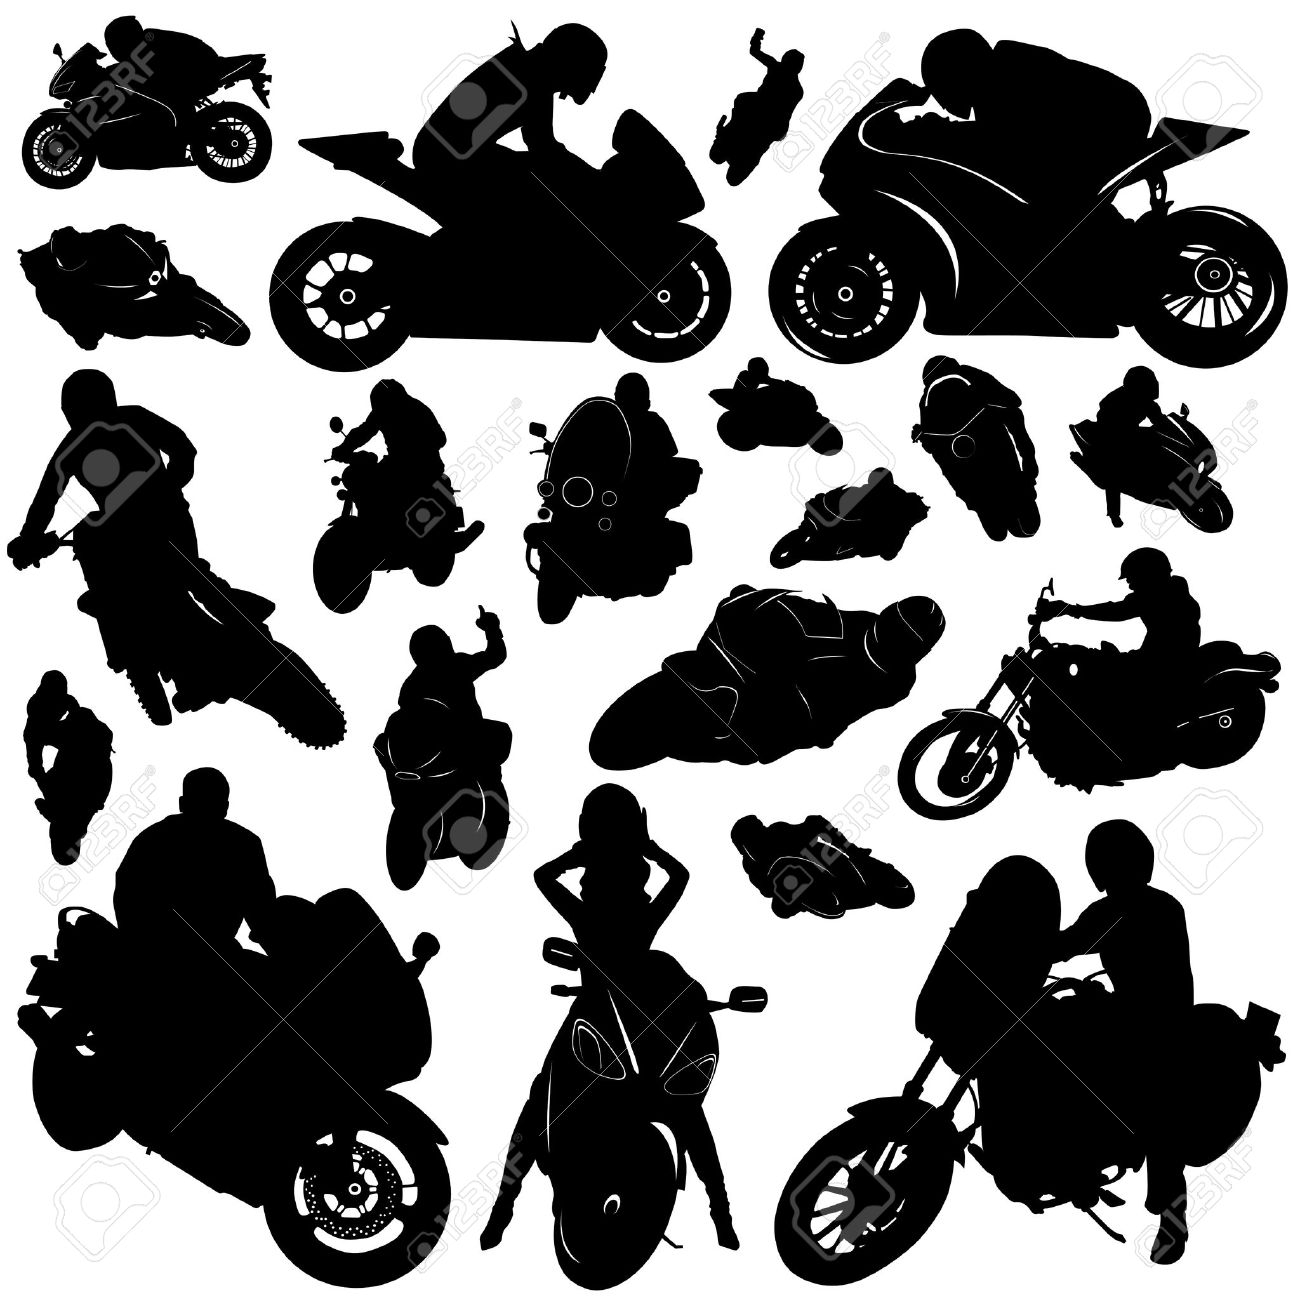 27 Dirt Bike Coloring Pages Pictures | FREE COLORING PAGES - Part 2